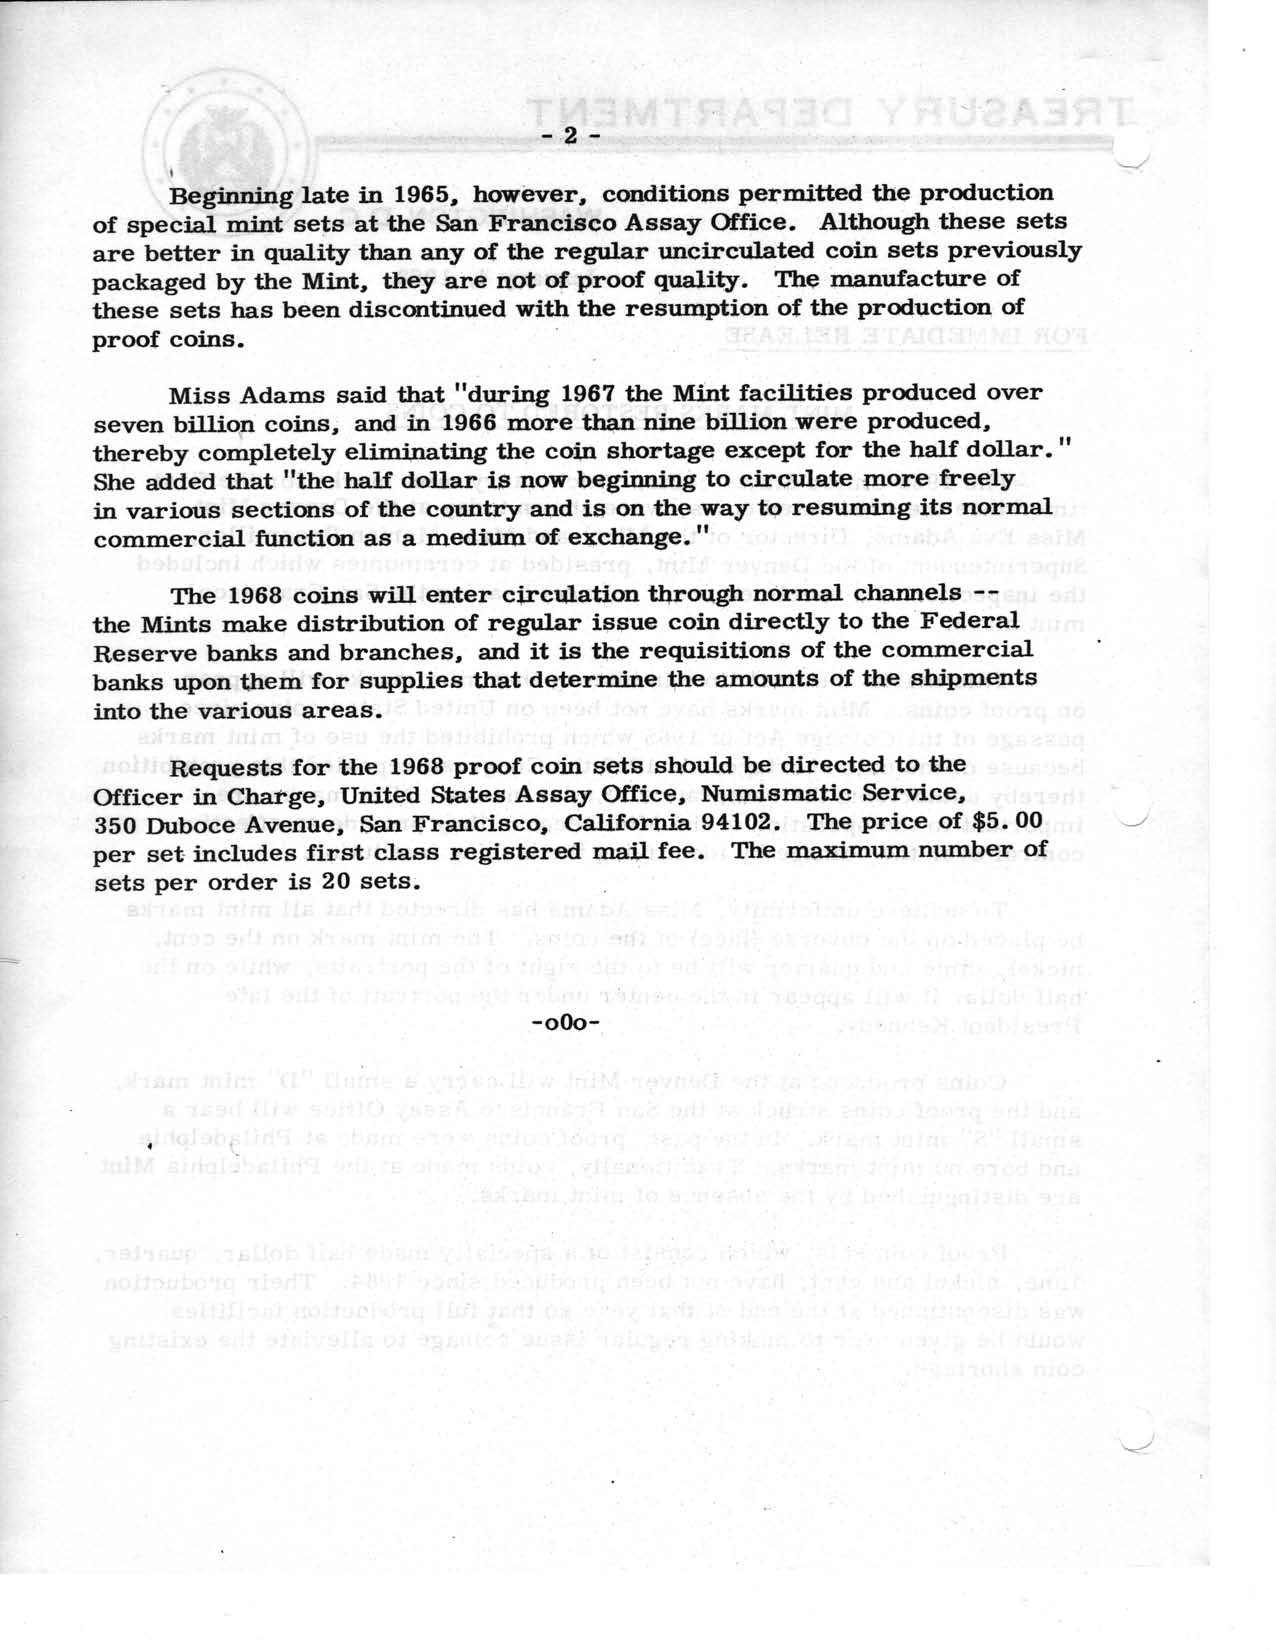 Historic Press Release: Mint Marks Restored, Page 2